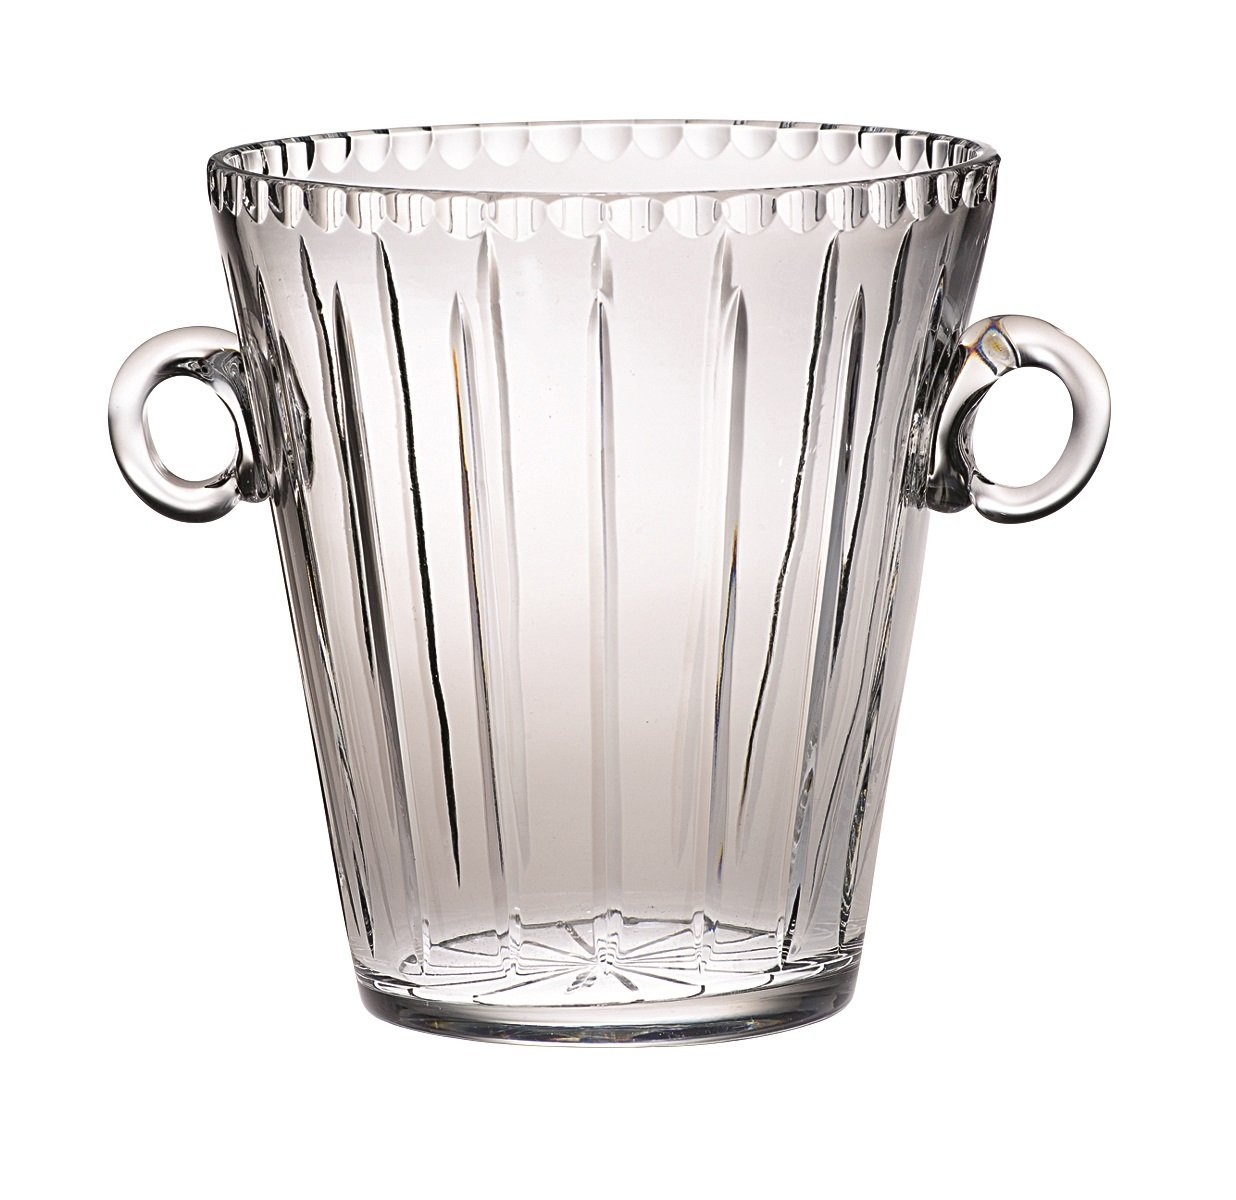 Majestic Gifts AJO-155 Handmade European Crystal Ice Bucket, 8.5''H, Clear